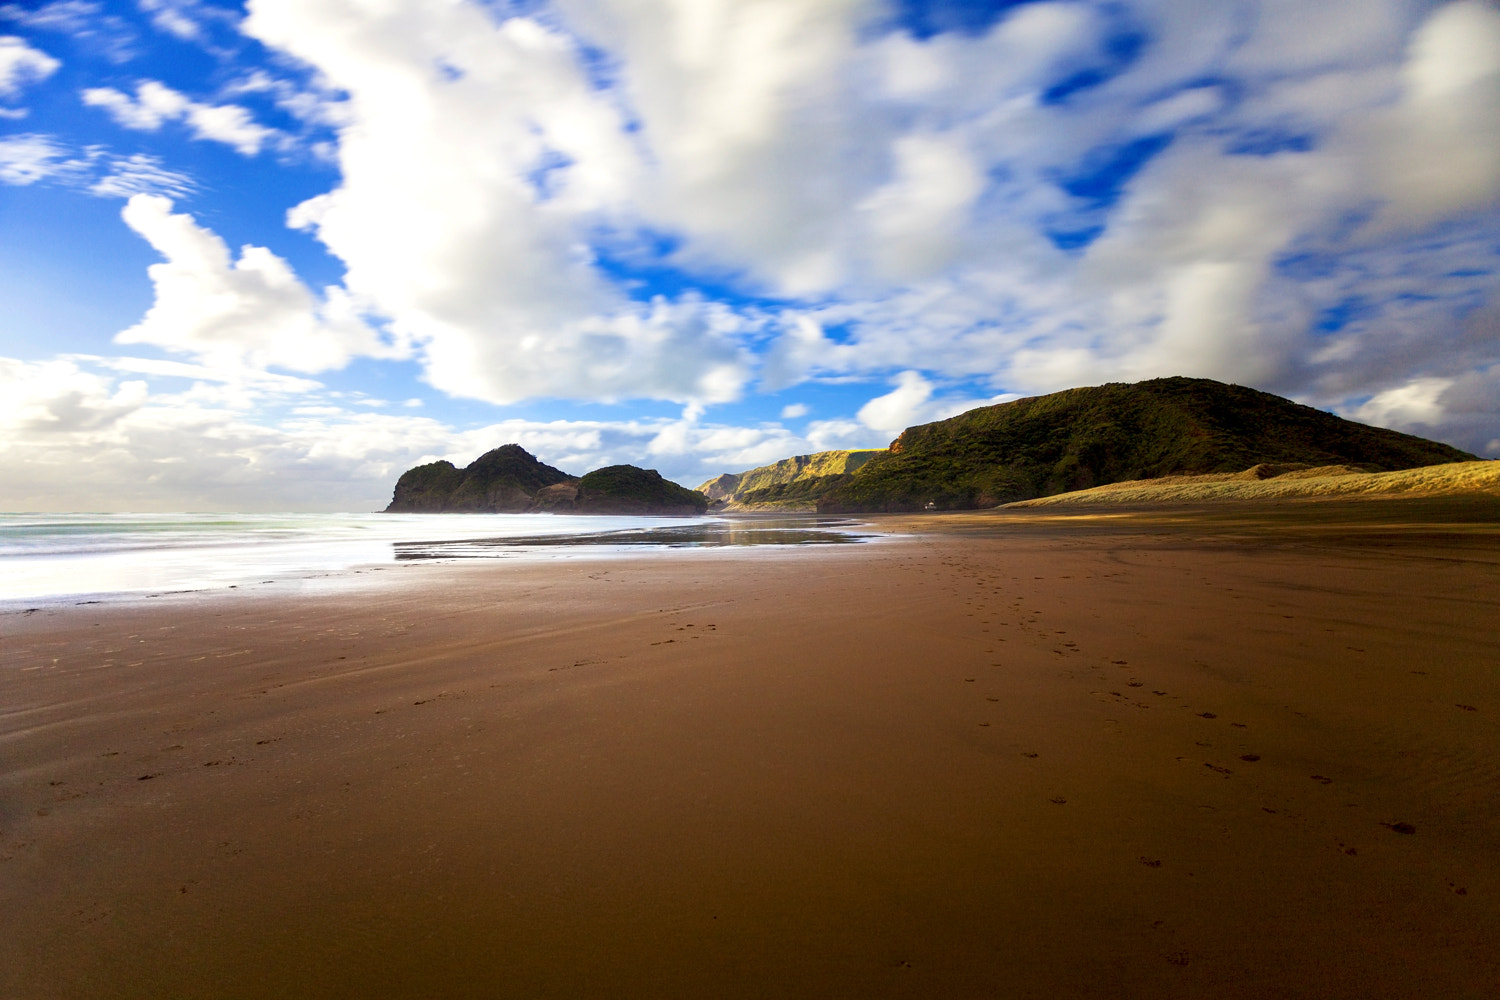 Photograph bethells beach by Dara Pilyugina on 500px